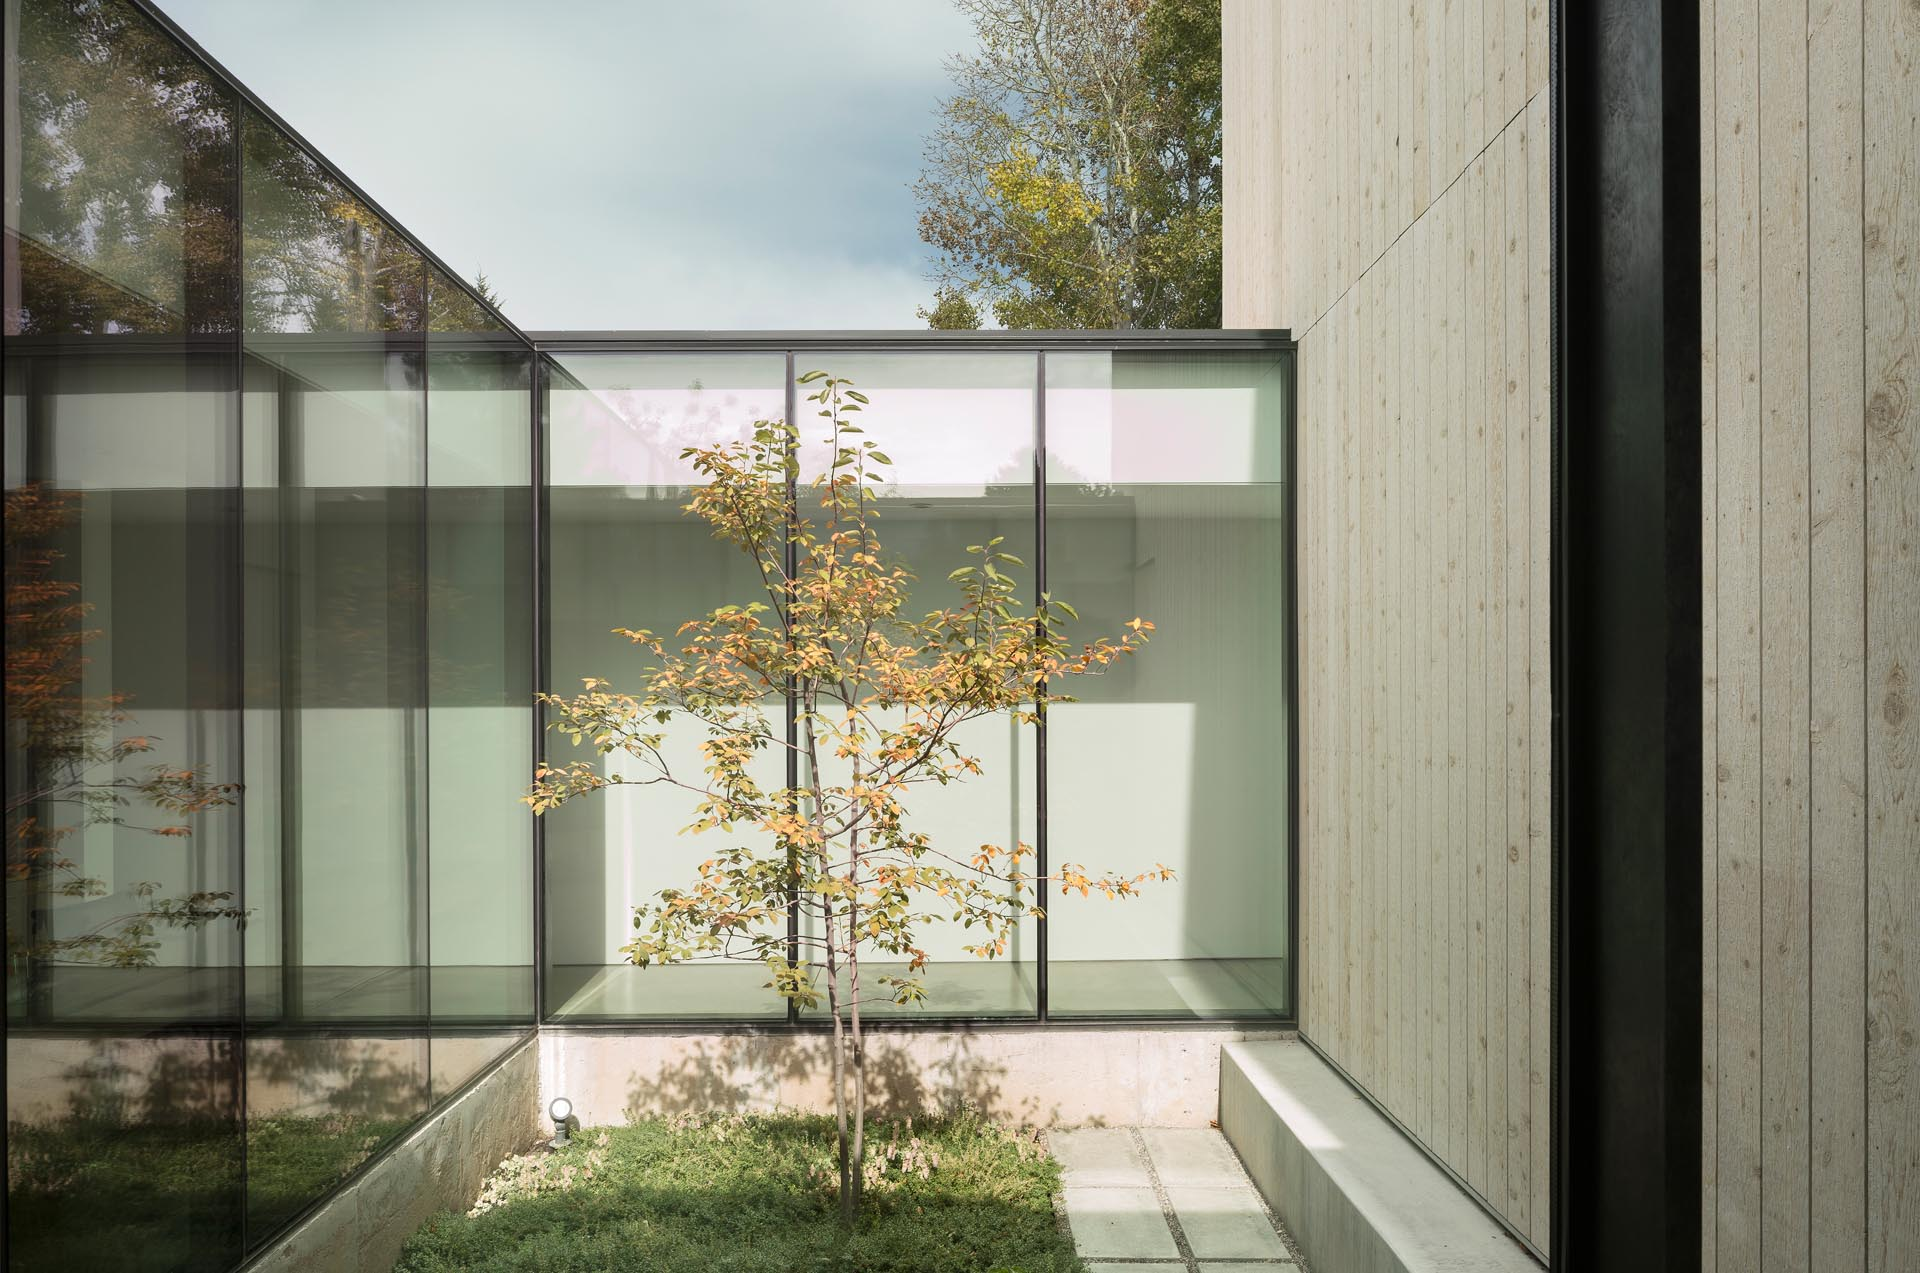 A modern home with a long hallway, floor-to-ceiling windows, and concrete floors.